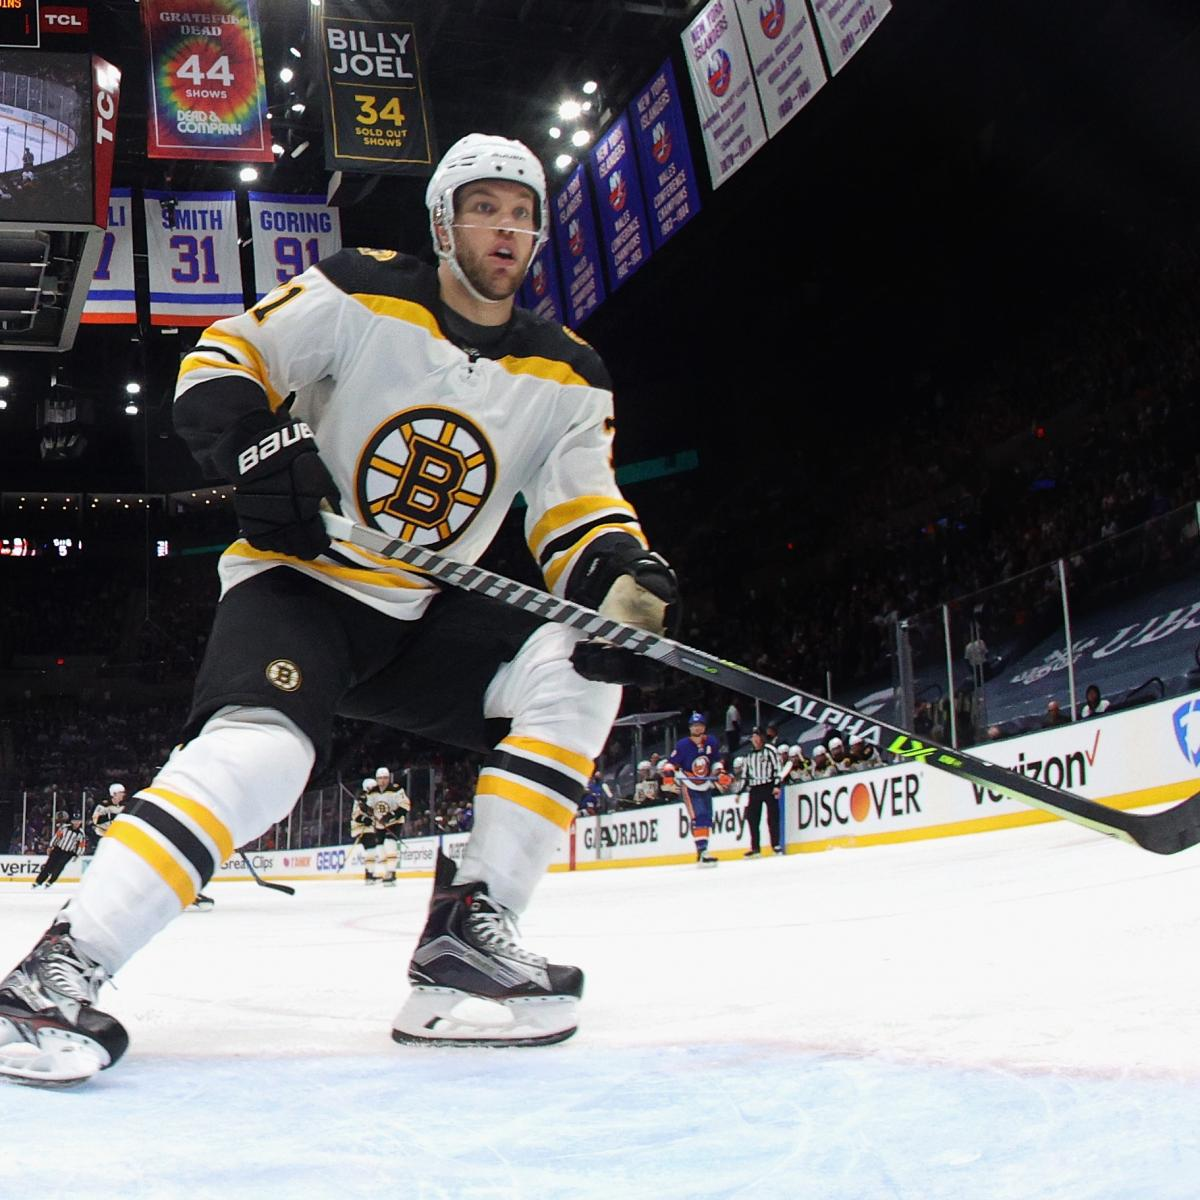 5 NHL Free Agents Who Have Raised Their Stock in the 2021 Playoffs